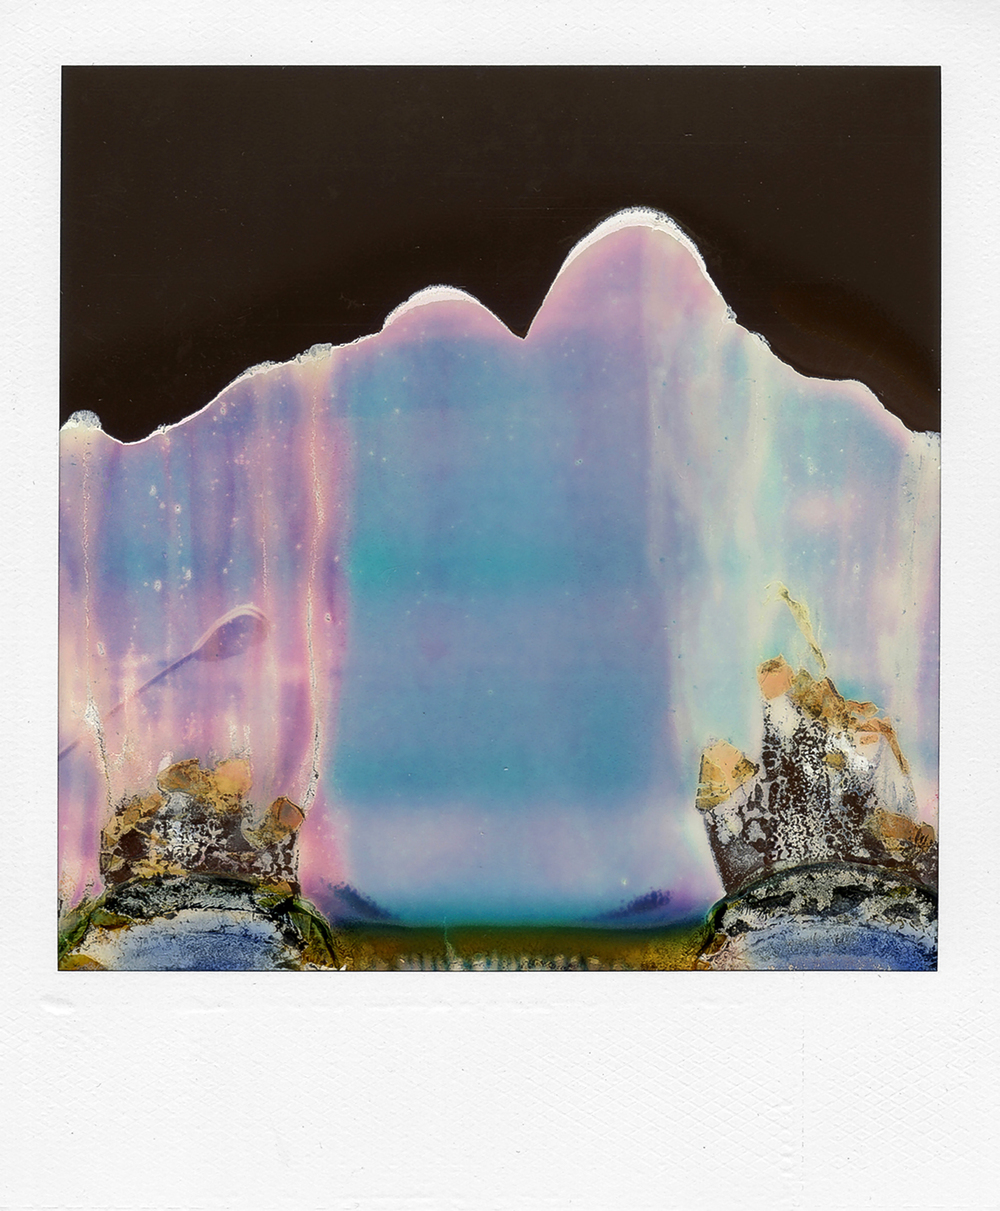 Ruined Polaroid #27 © William Miller